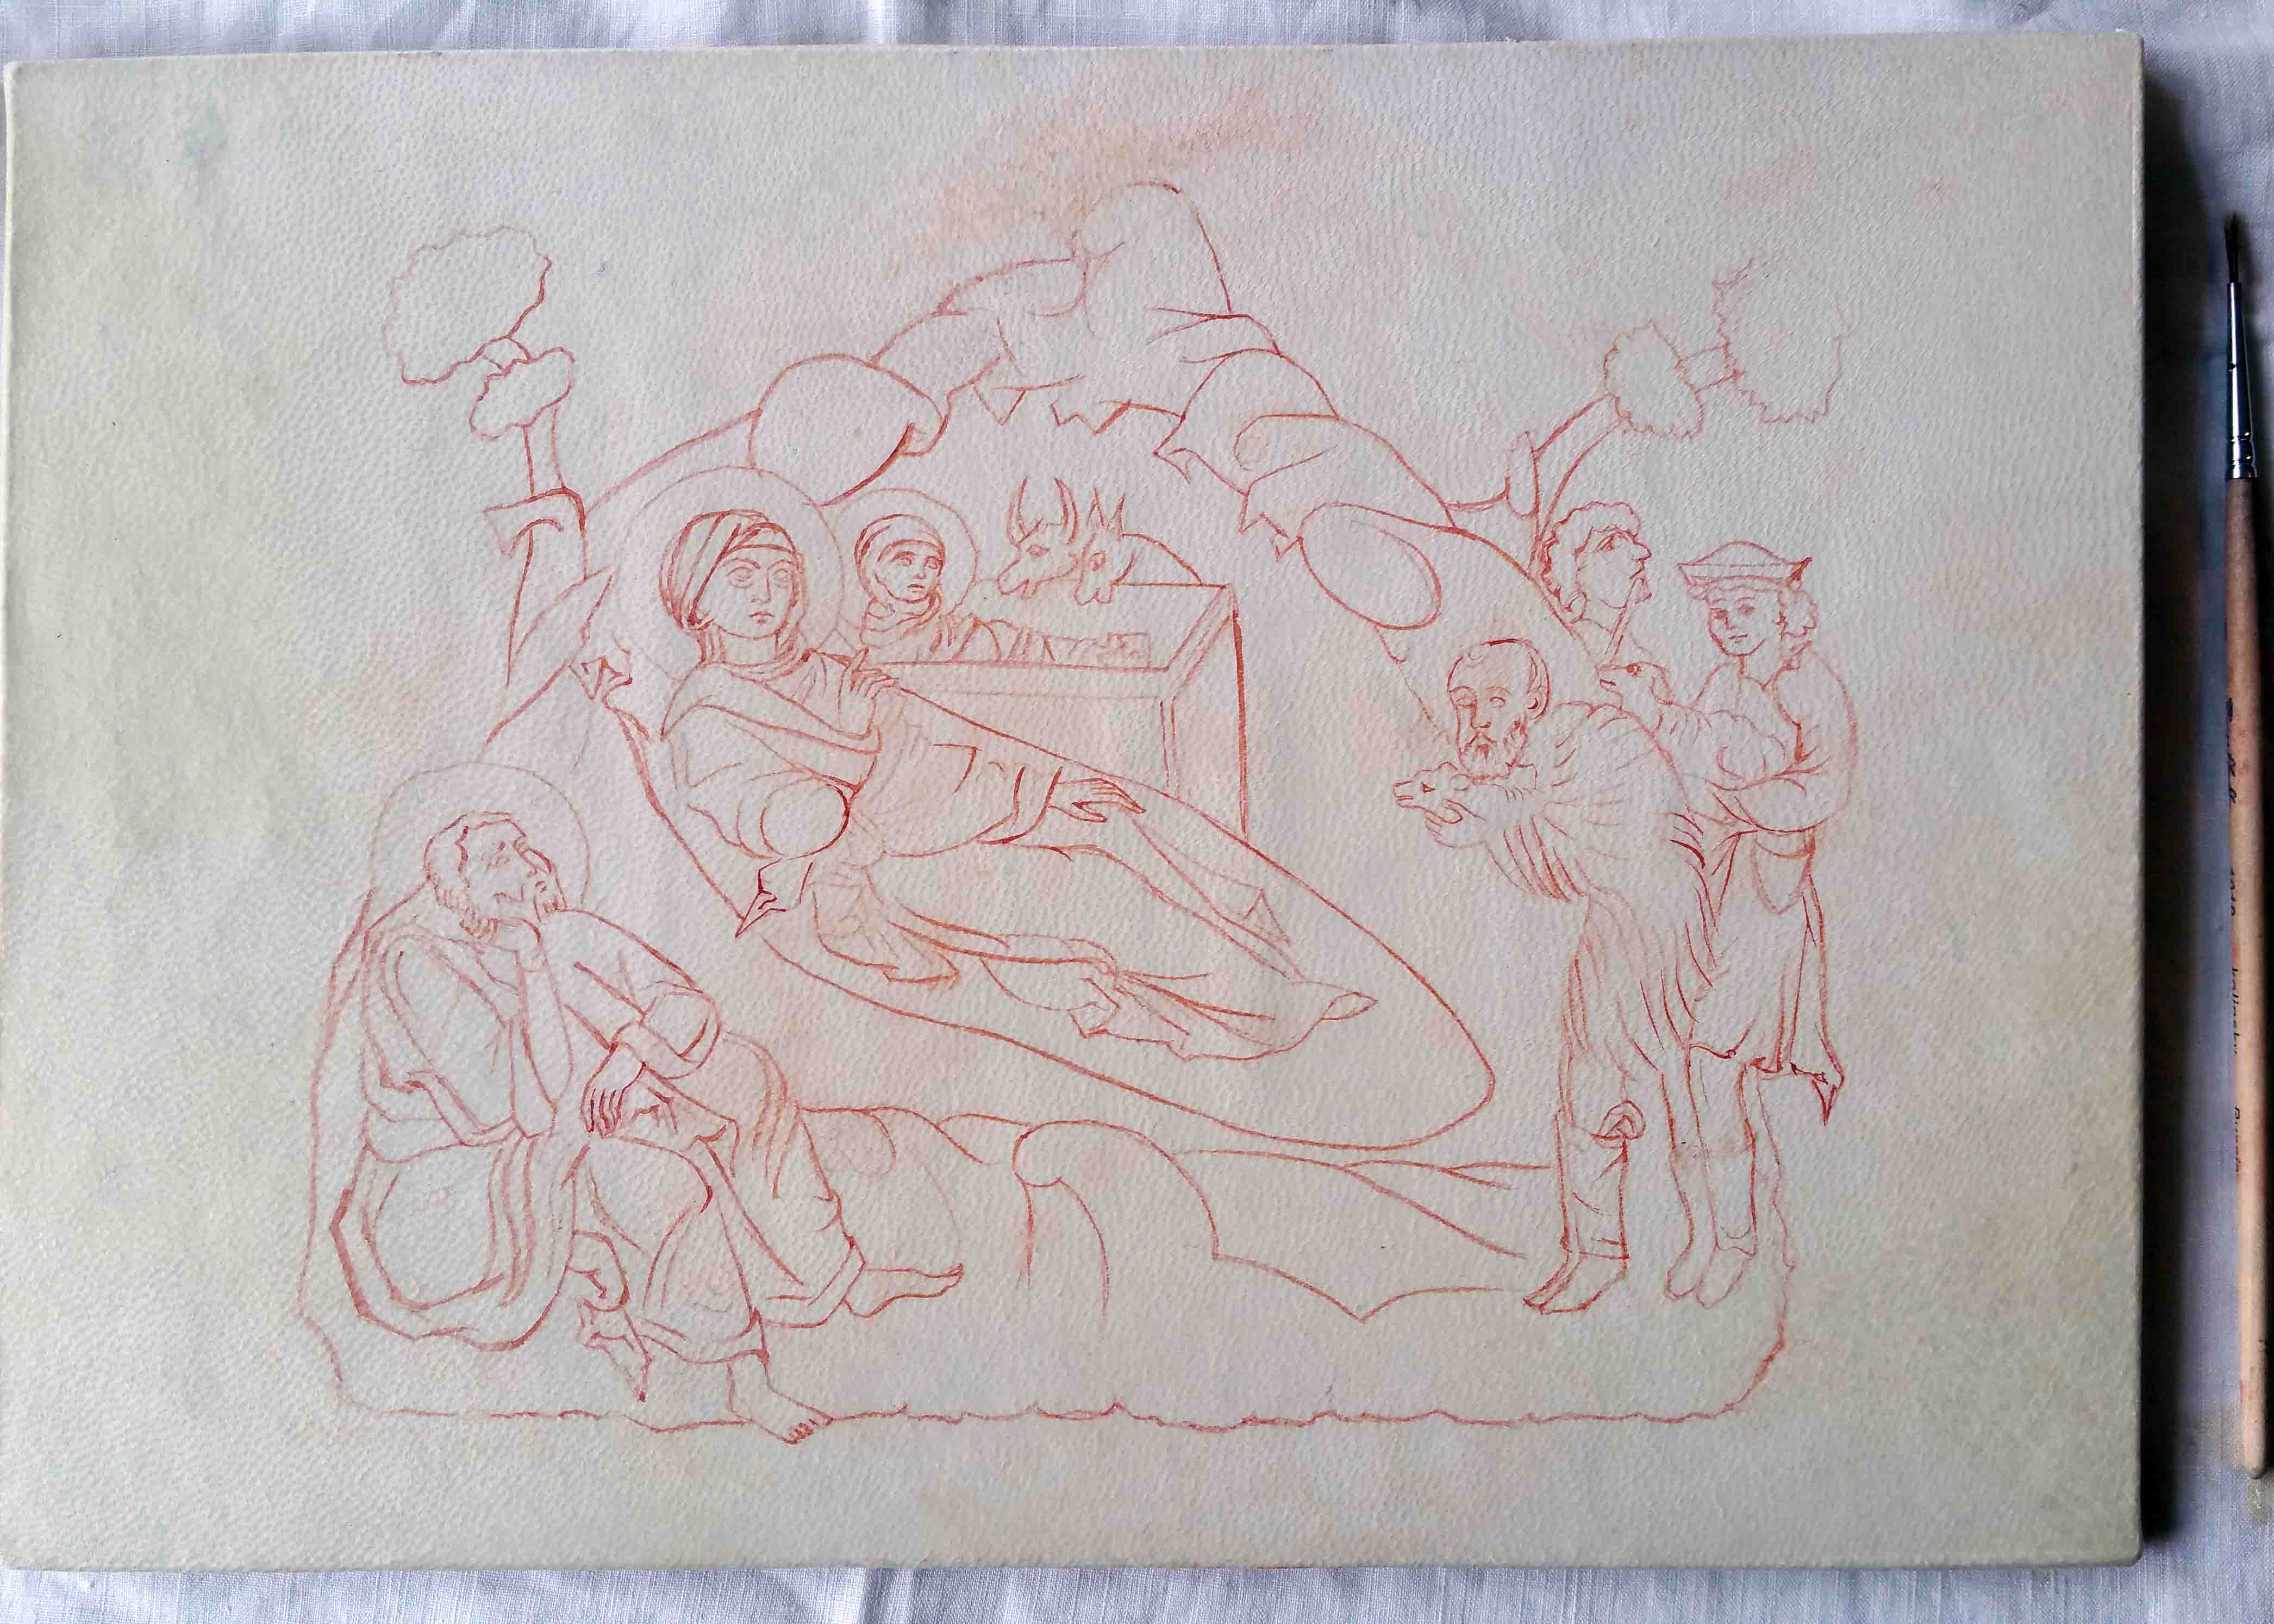 Red drawing outlines on to vellum